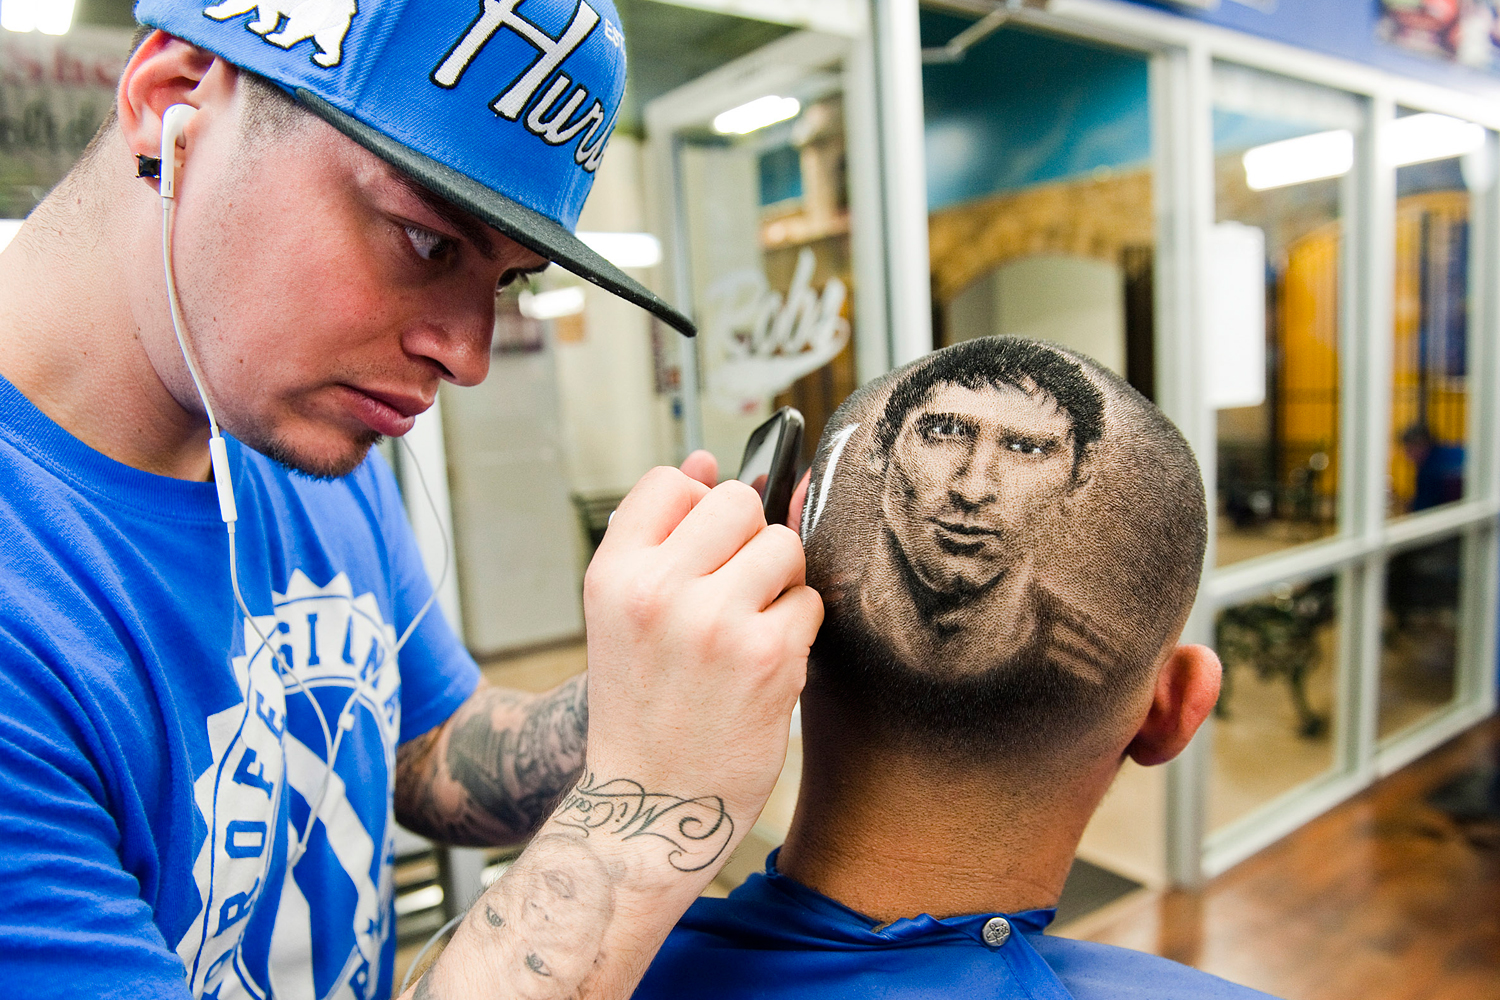 A likeness of Argentine soccer player Lionel Messi is cut onto the head of a customer ahead of the World Cup match between Argentina and Switzerland.